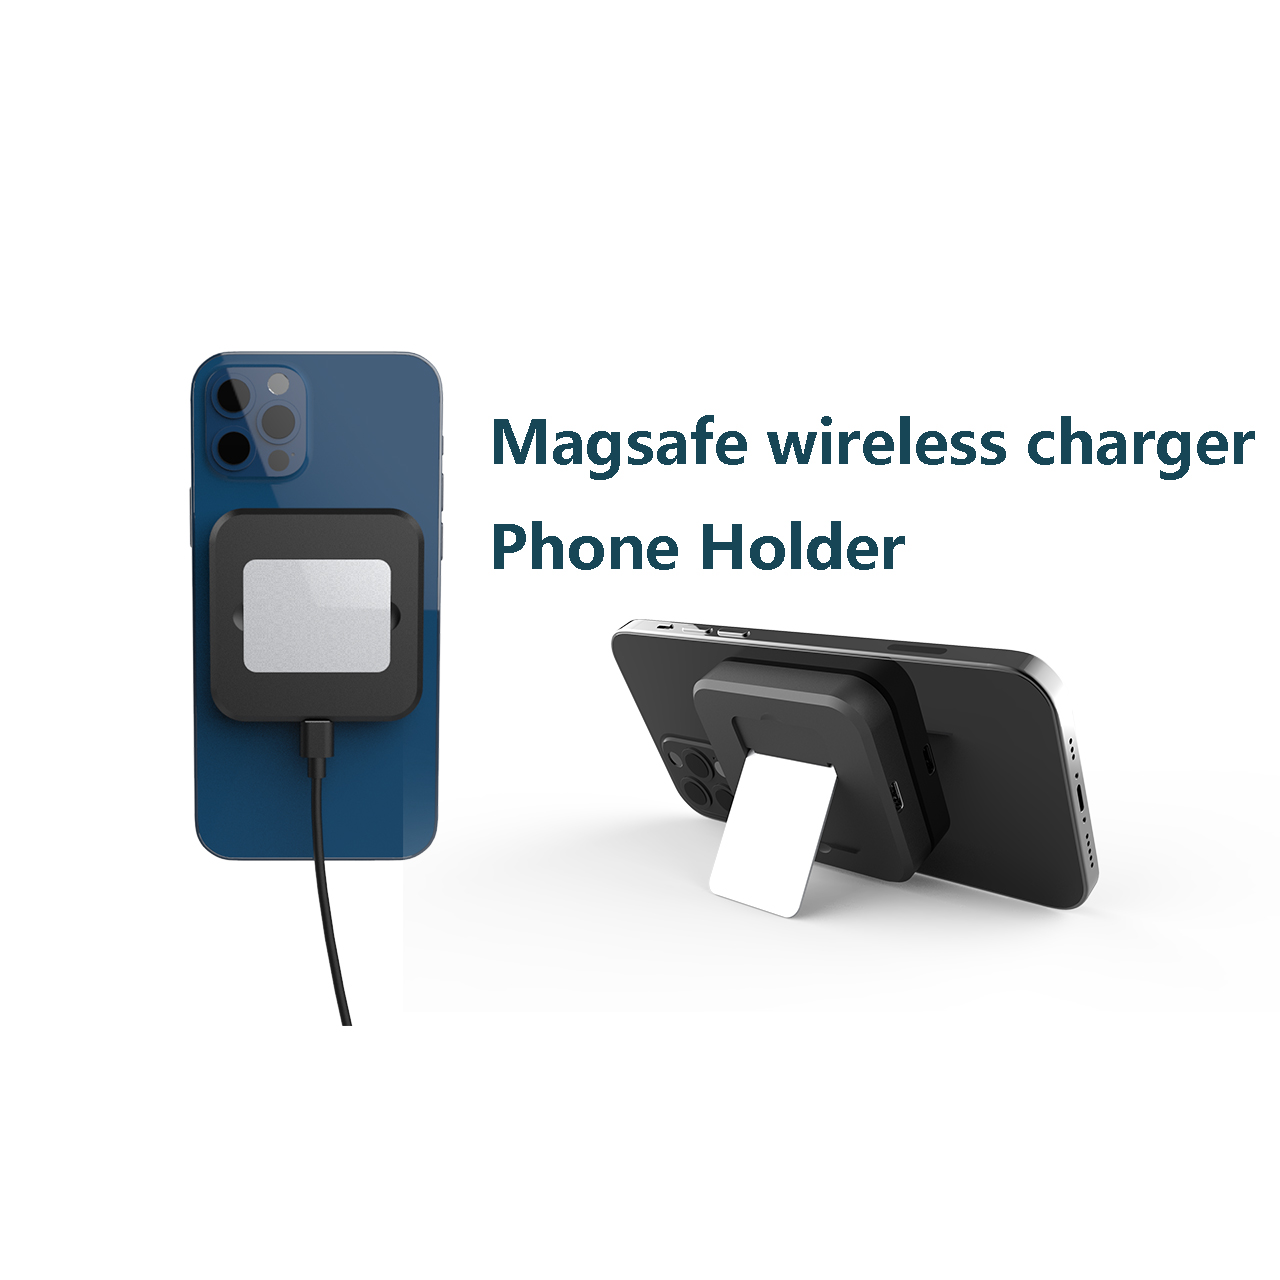 Magsafe wireless charging stand and pad for iPhone 12 pro max